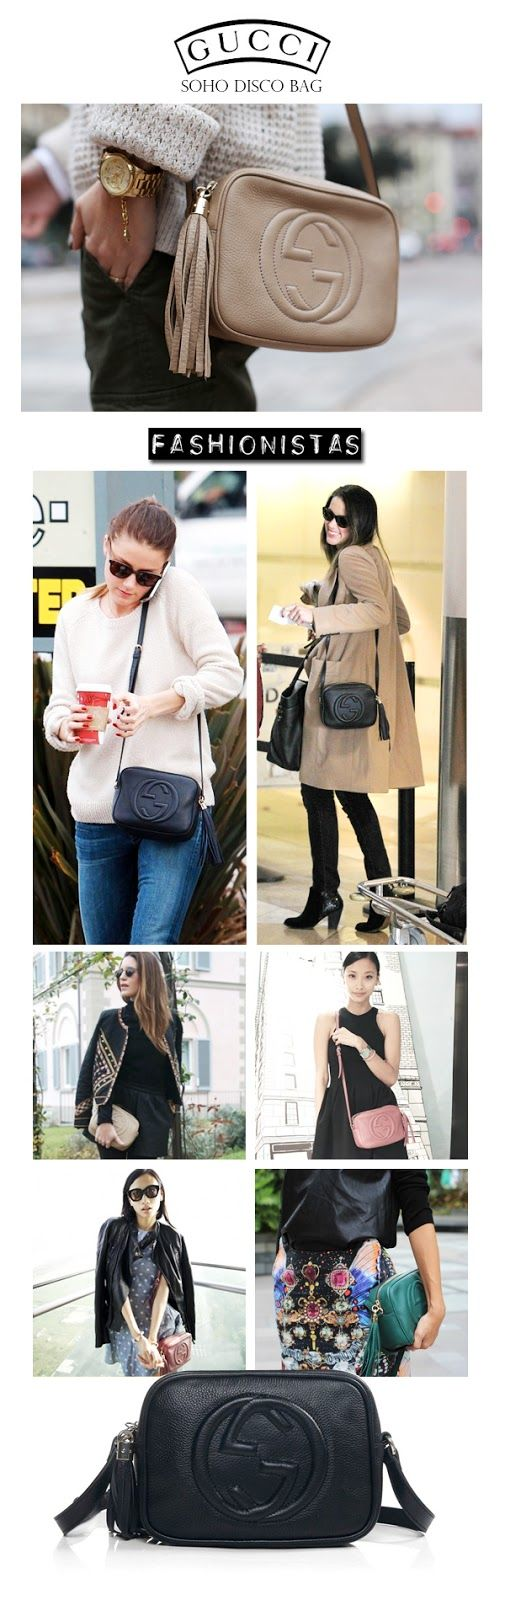 Inseller has it! Celebrities show off with one of Gucci's must-have it-bags.